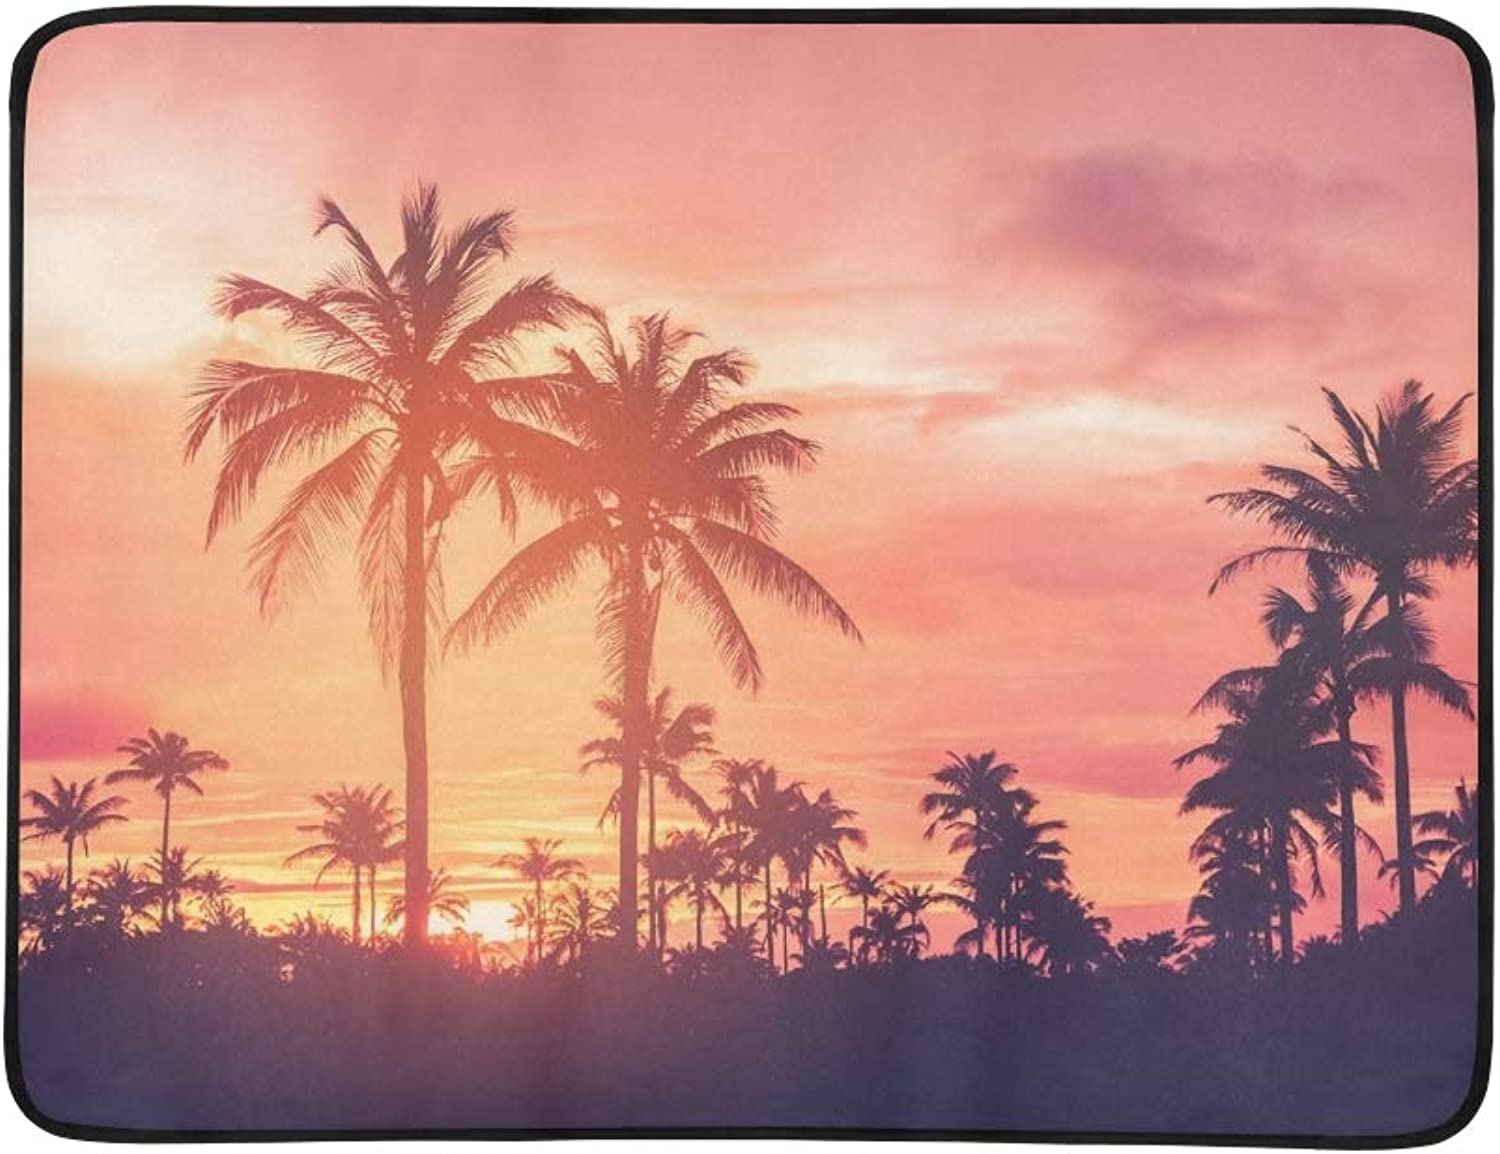 Copy Space Silhouette Tropical Palm Tree Portable and Foldable Blanket Mat 60x78 Inch Handy Mat for Camping Picnic Beach Indoor Outdoor Travel